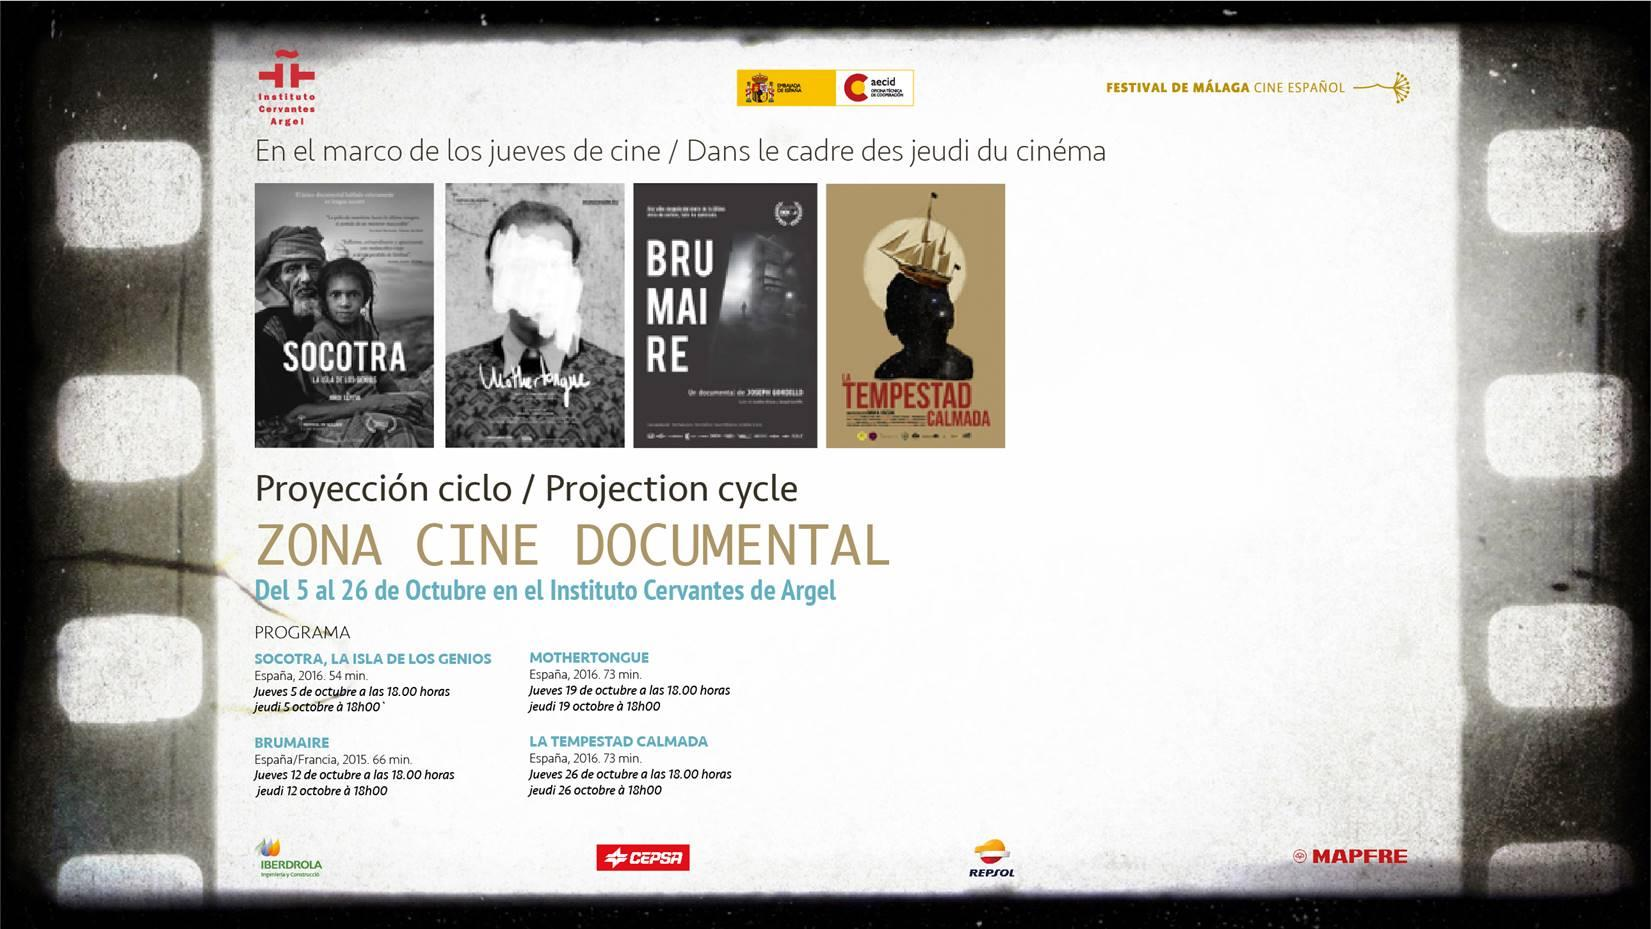 DIA-CINEDOCUMENTAIRE